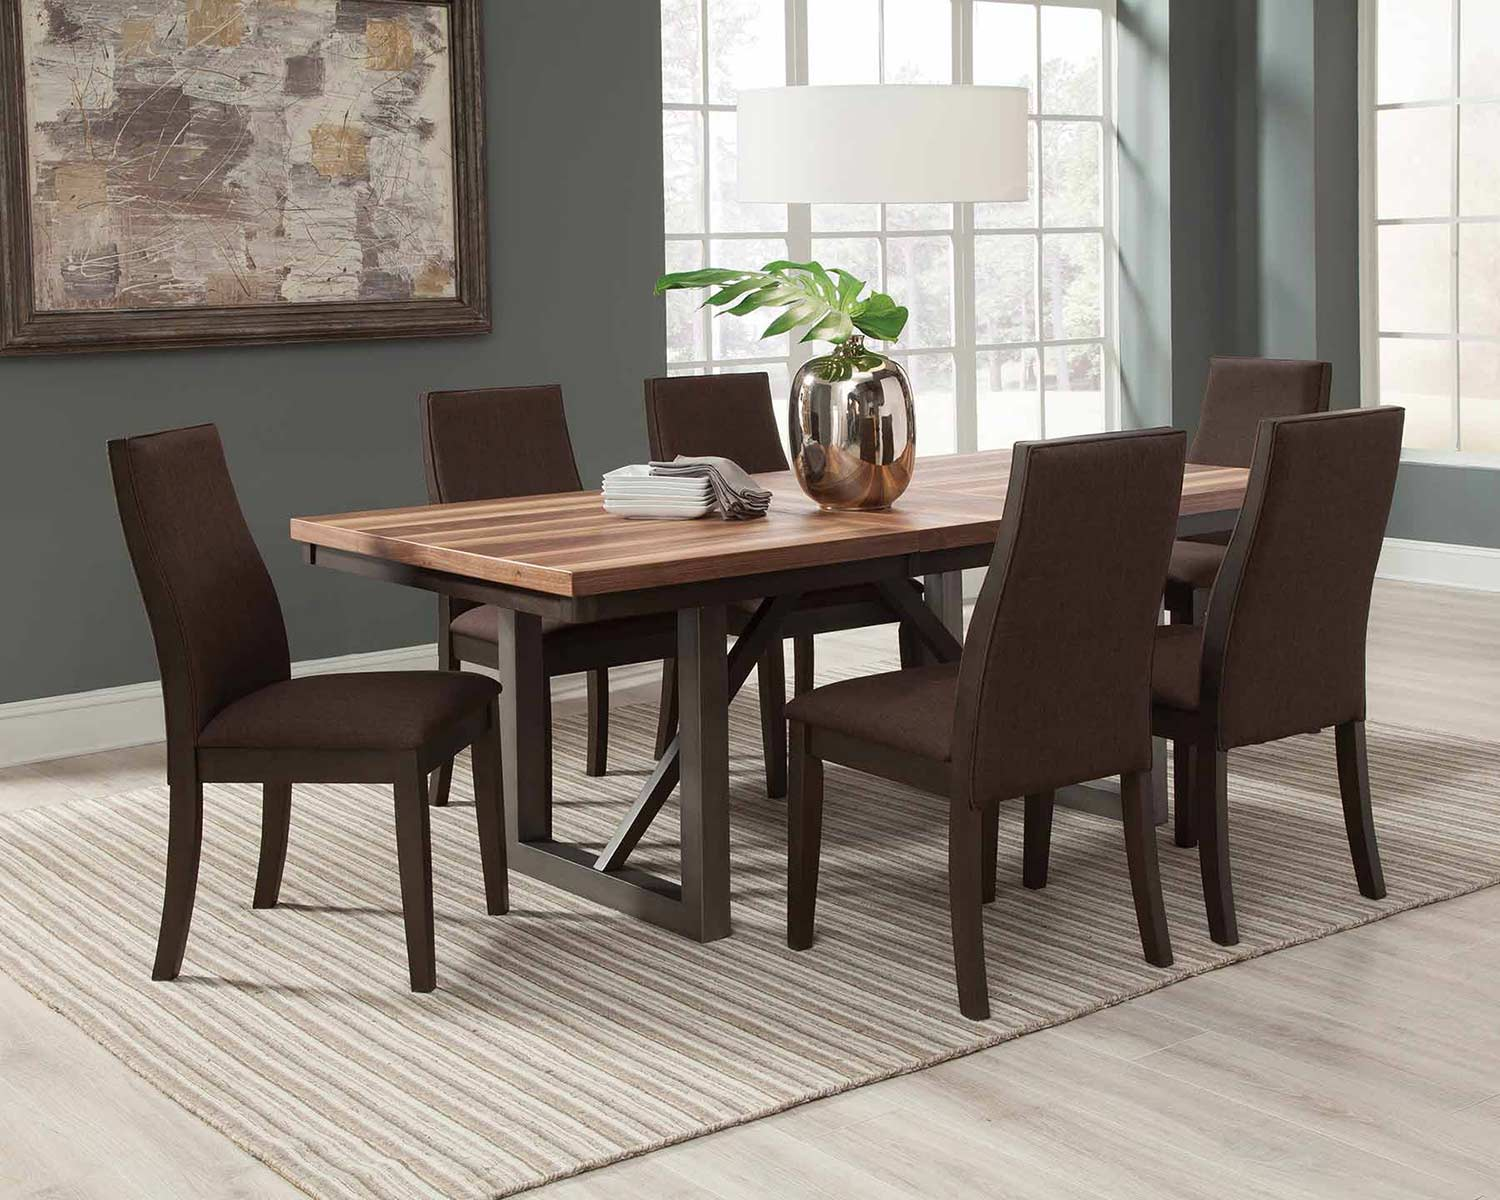 Coaster Spring Creek Dining Set - Natural Walnut